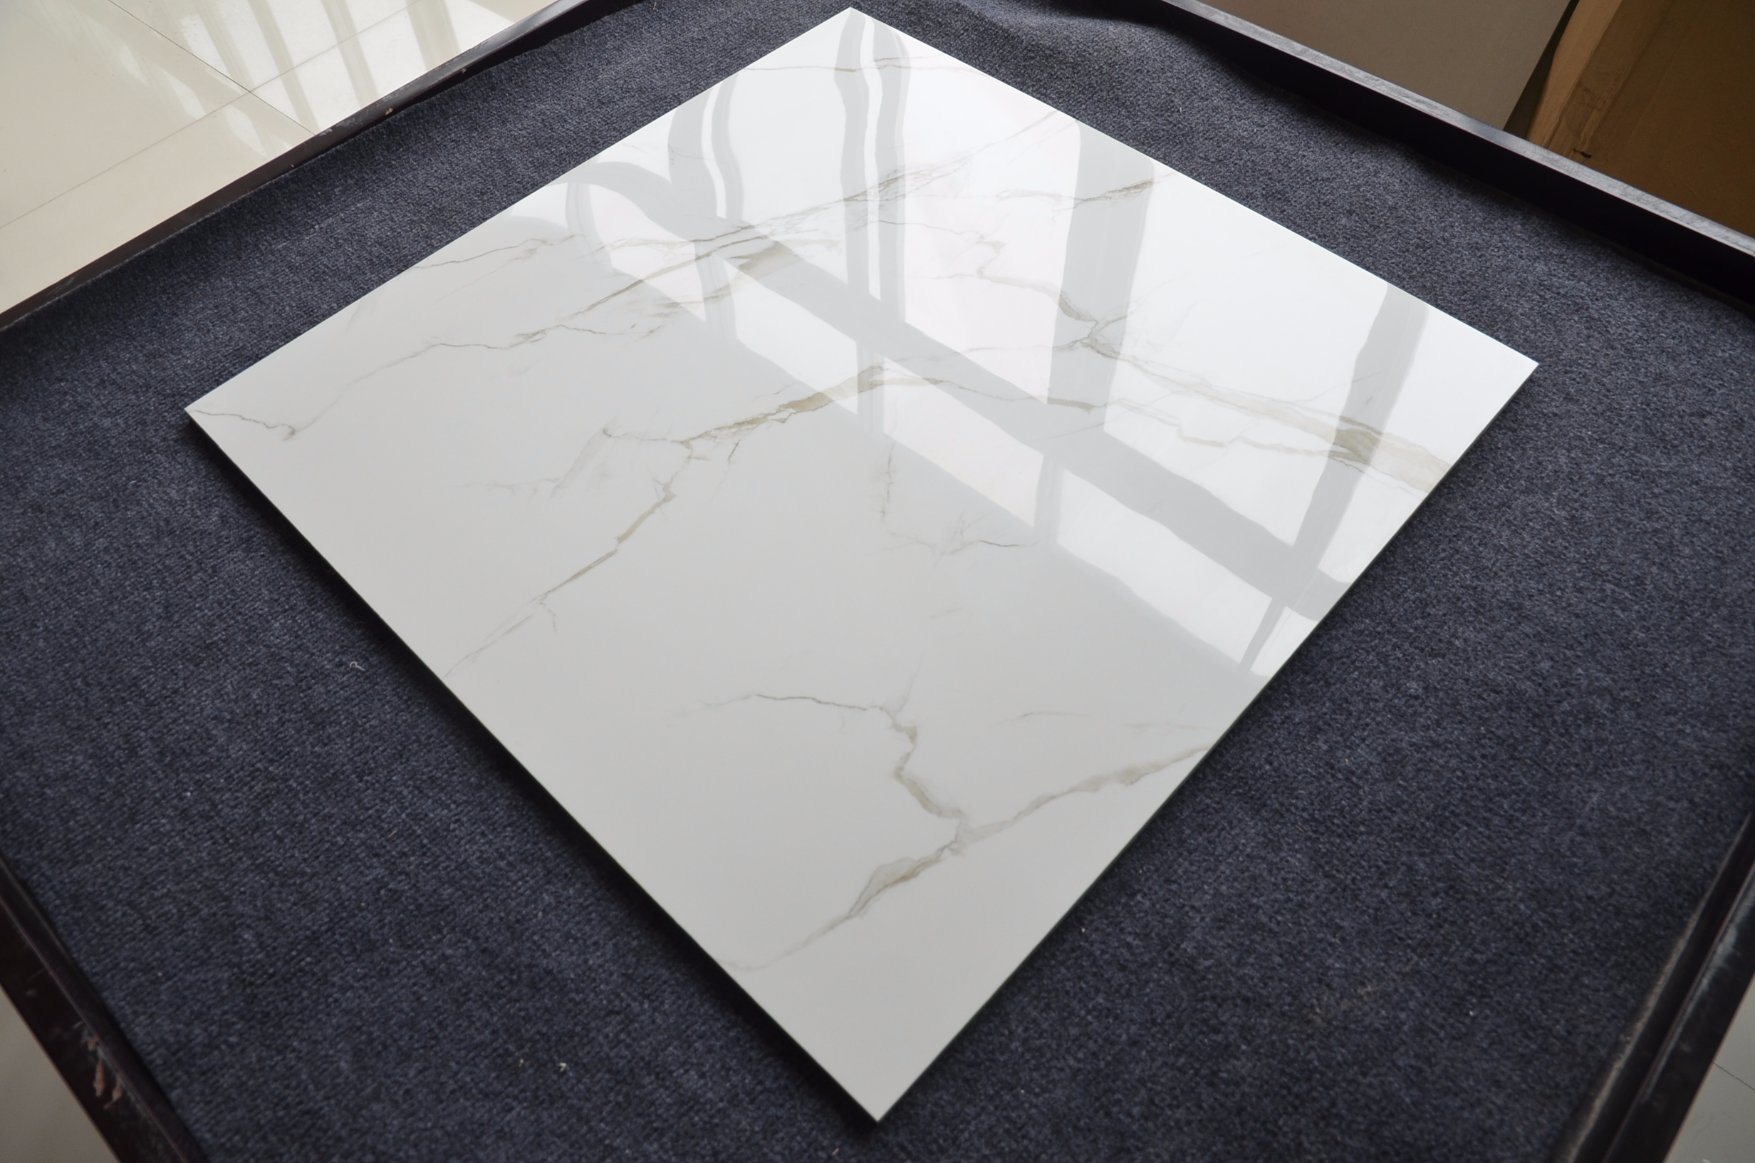 China Glossy Polished White Floor Ceramic 60x60 Italy Comfort Room